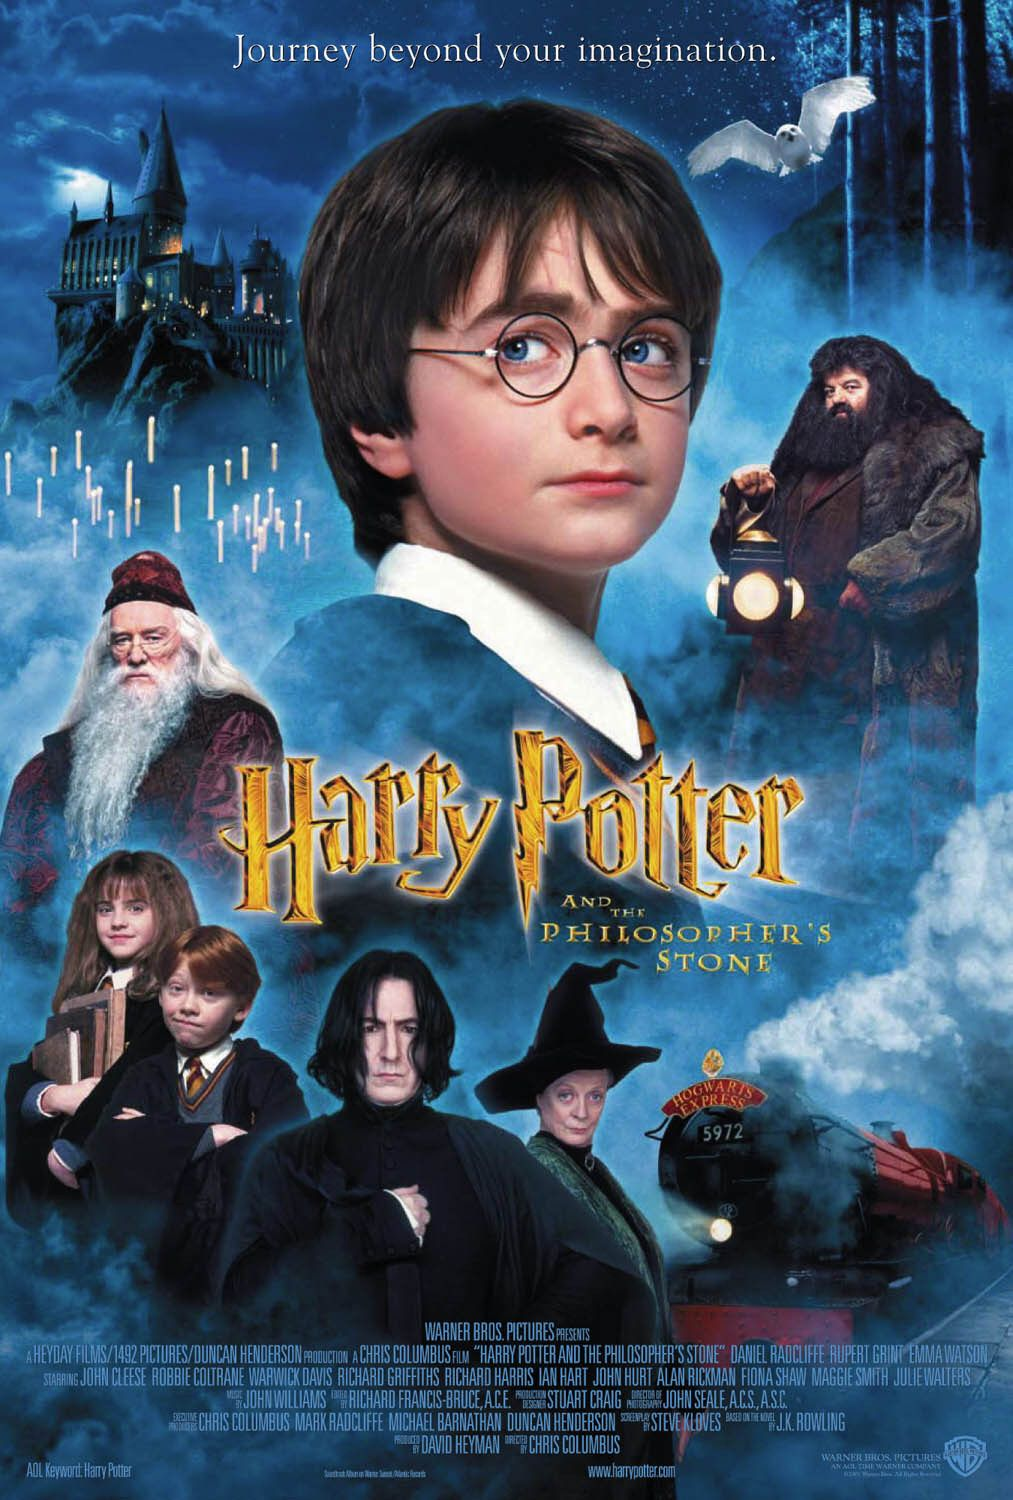 HARRY POTTER AND THE PHILOSOPHER'S STONE (International) POSTER buy movie posters at Starstills.com (SSF2087-500315)